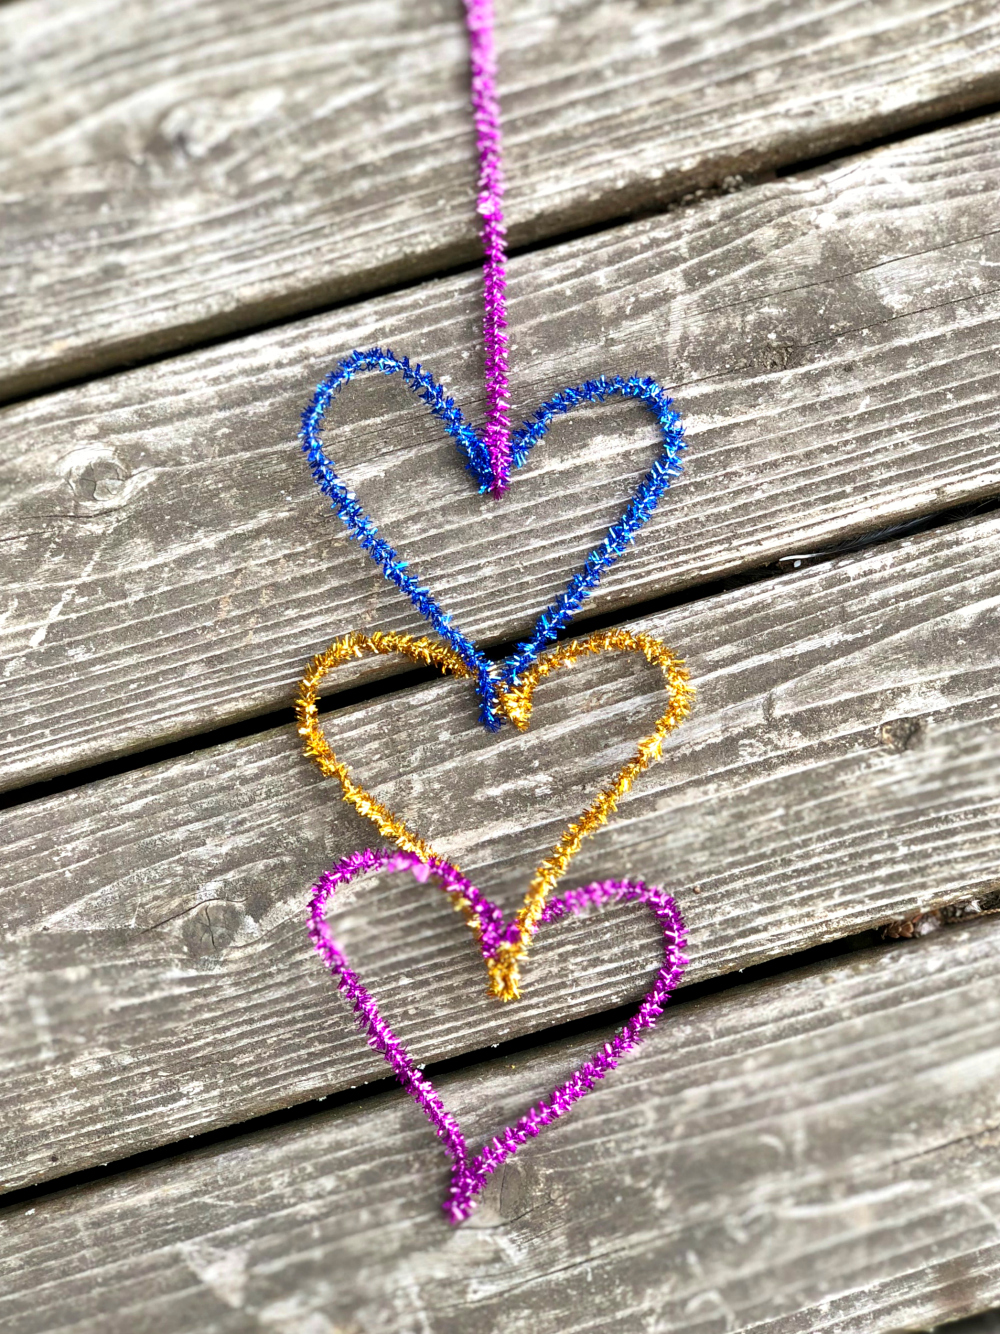 Pipe Cleaner Hearts Connection Through Creativity